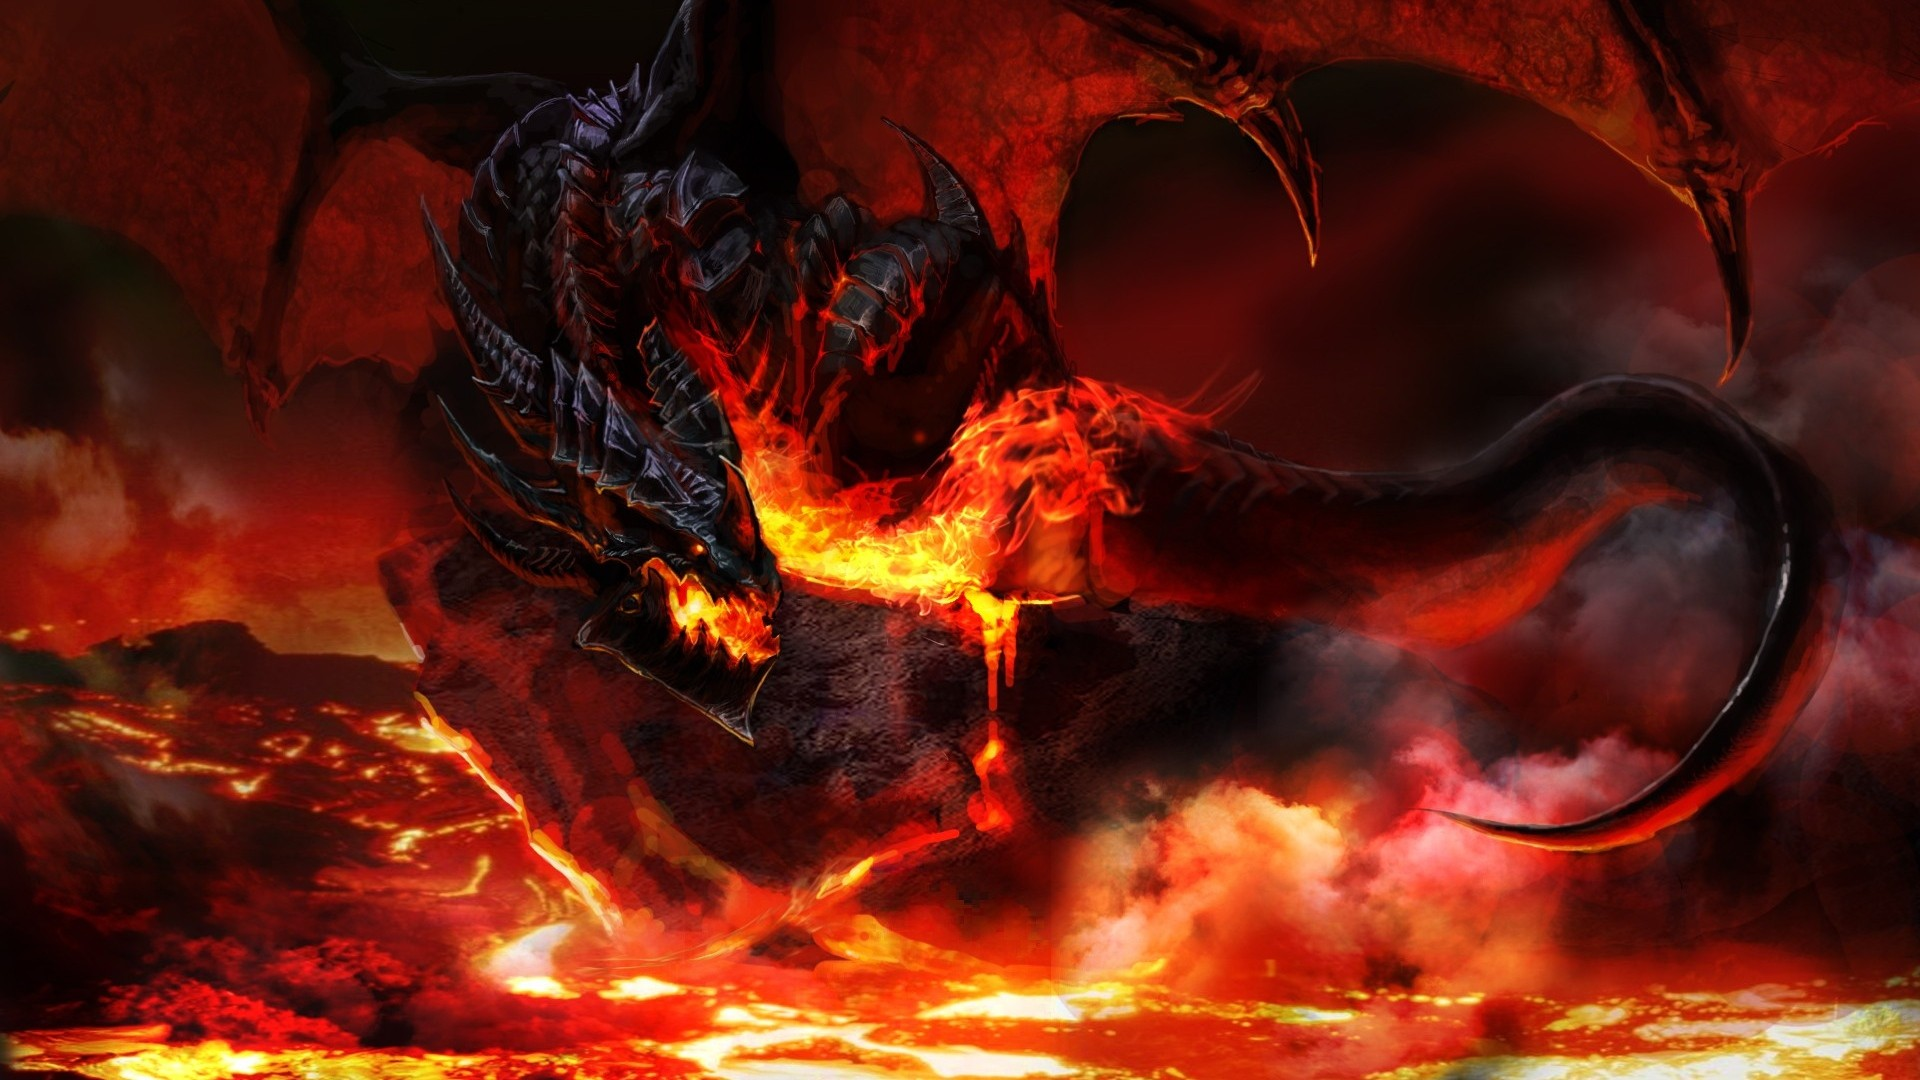 Dragon Wallpaper Hd 1080p ① Download Free Amazing Backgrounds For